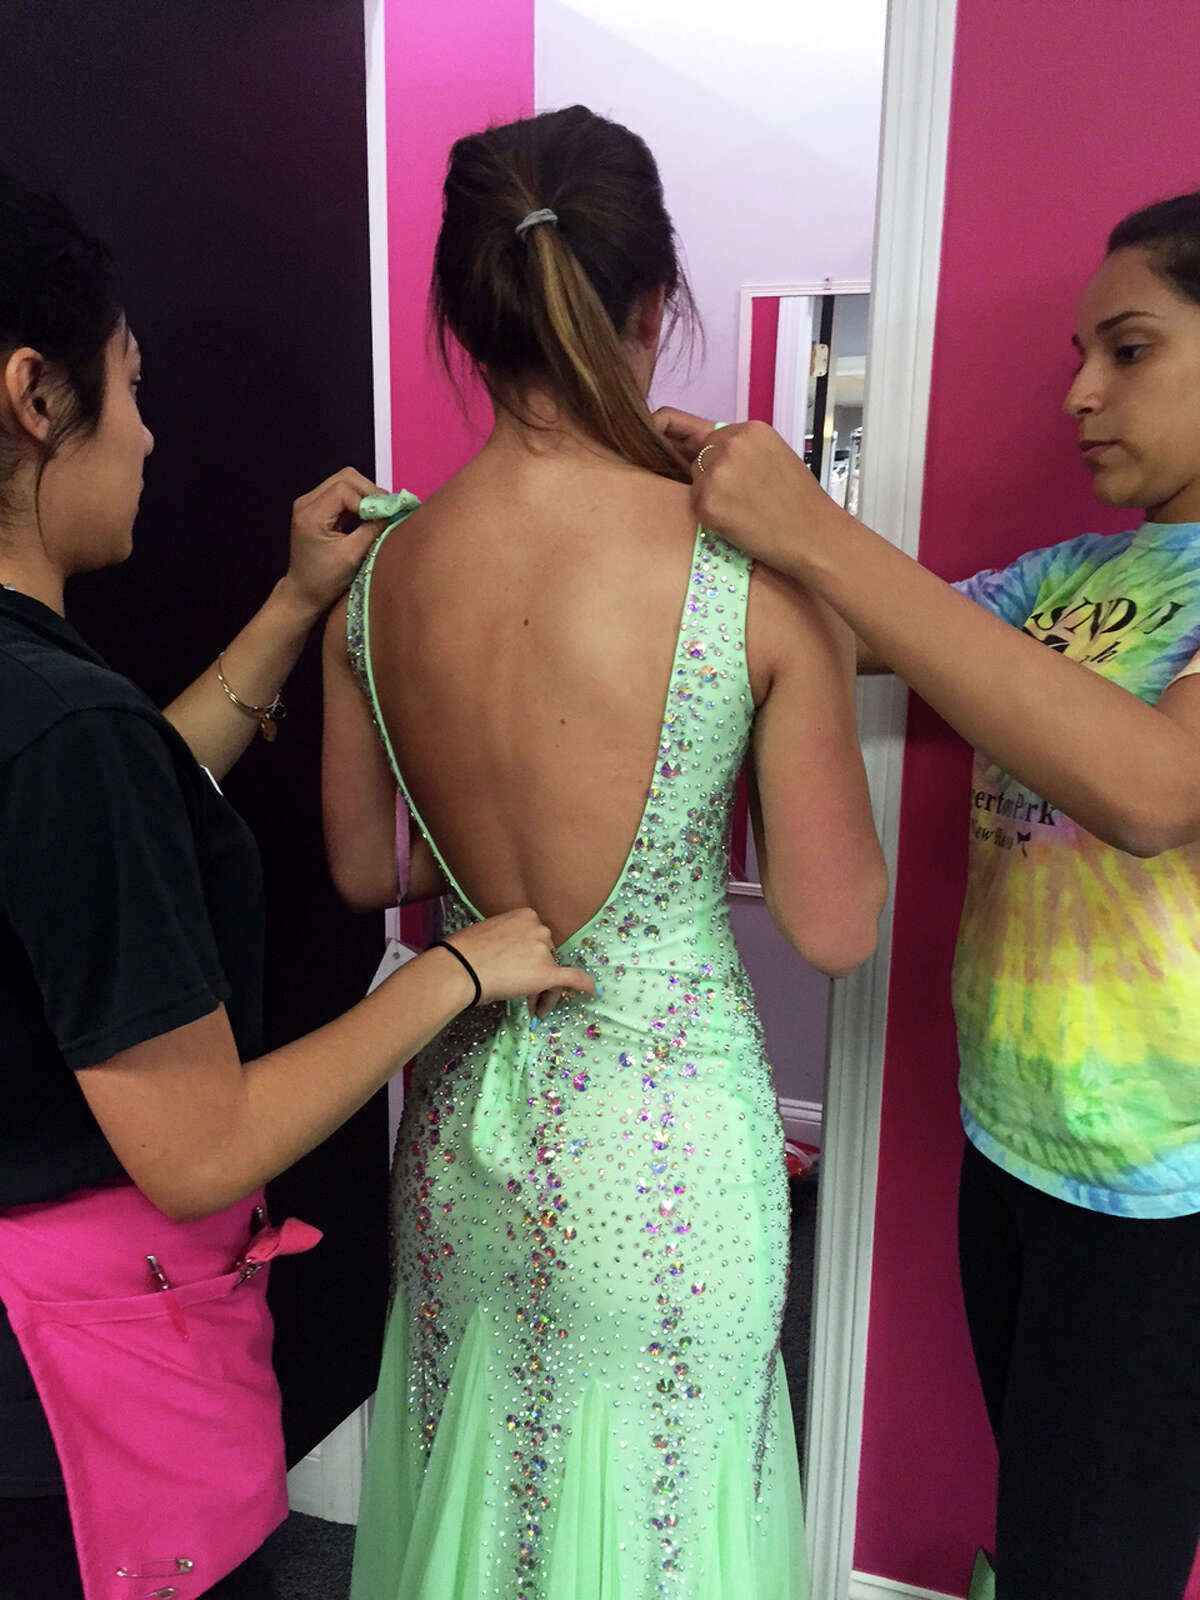 Kylee Opper has her prom dress altered to meet the dress code standard set by the Shelton, Conn. school system. Oppers mother, Trisha Marina, assumed this dress which was purchased after the first one was banned, would pass muster because only the back was exposed, not the front.